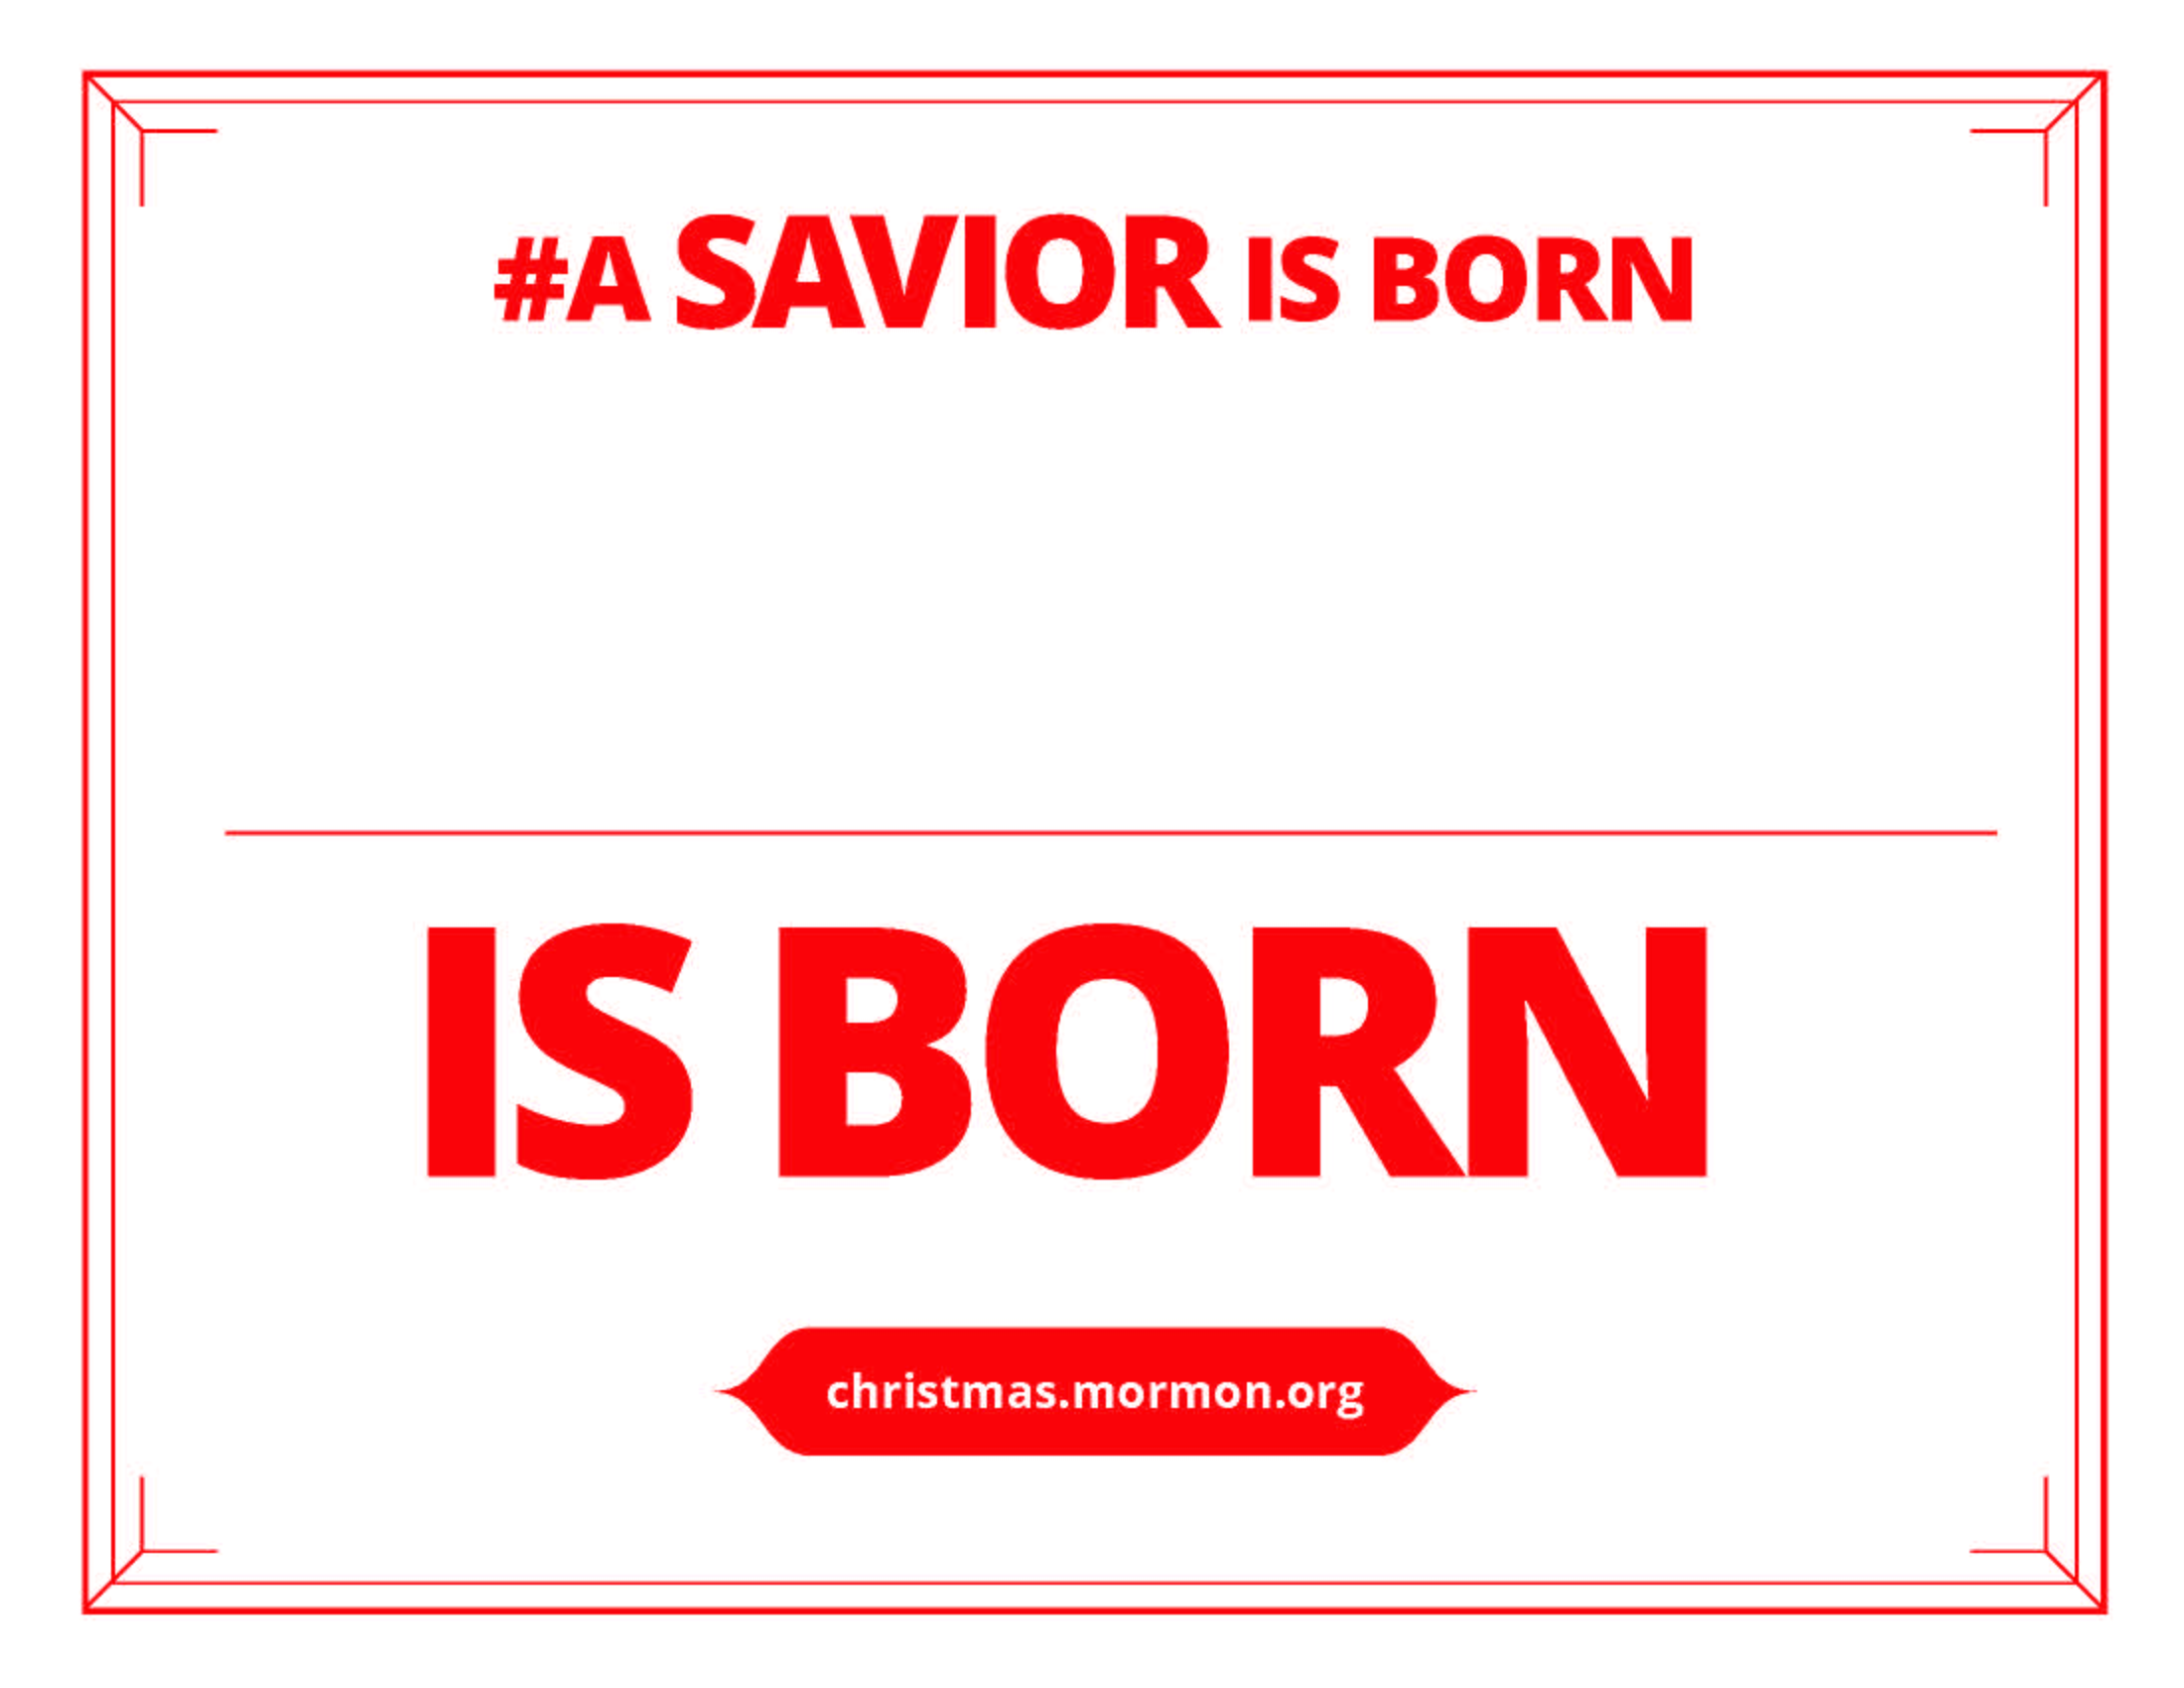 ASaviorIsBorn-LDS-Christmas-Print_Share_1